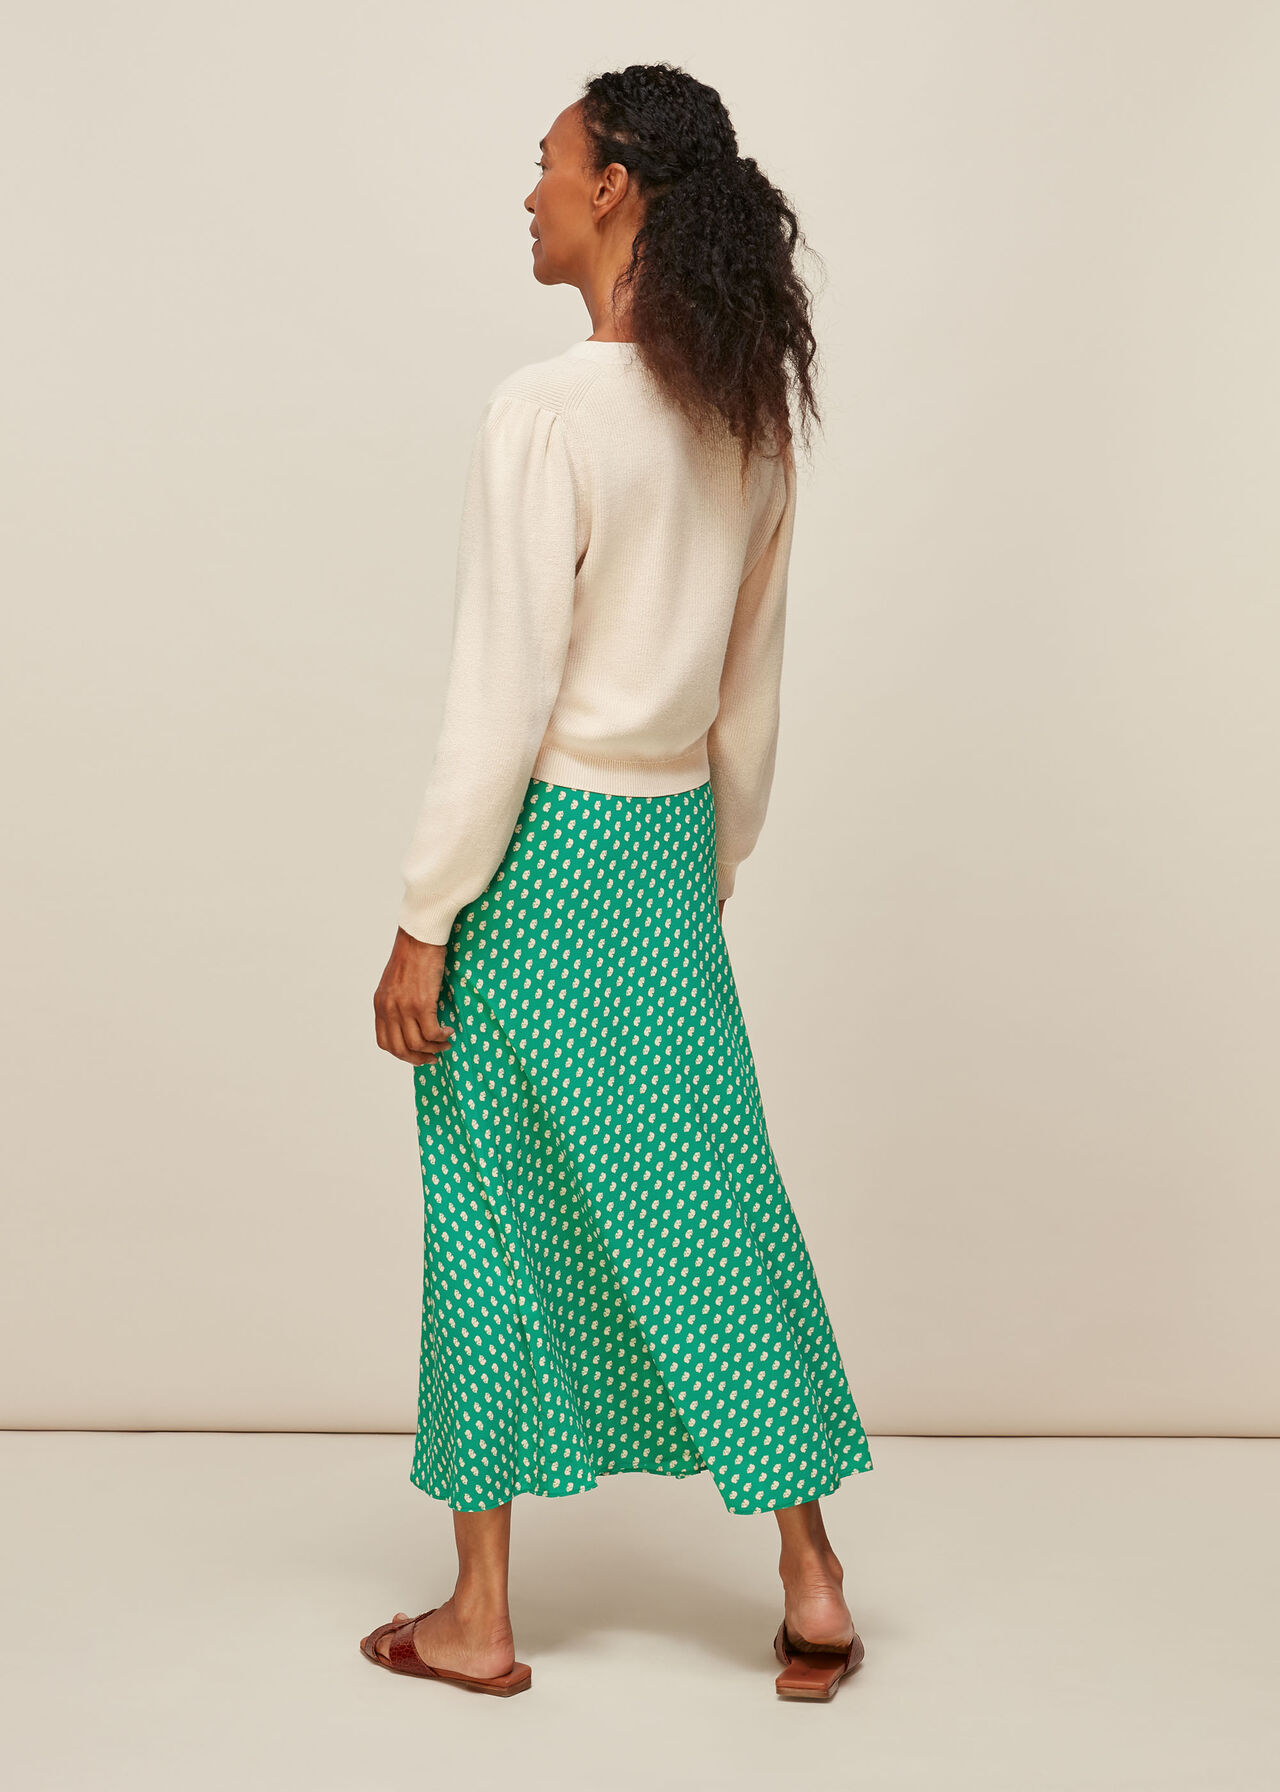 Elephant Print Bias Cut Skirt Green/Multi